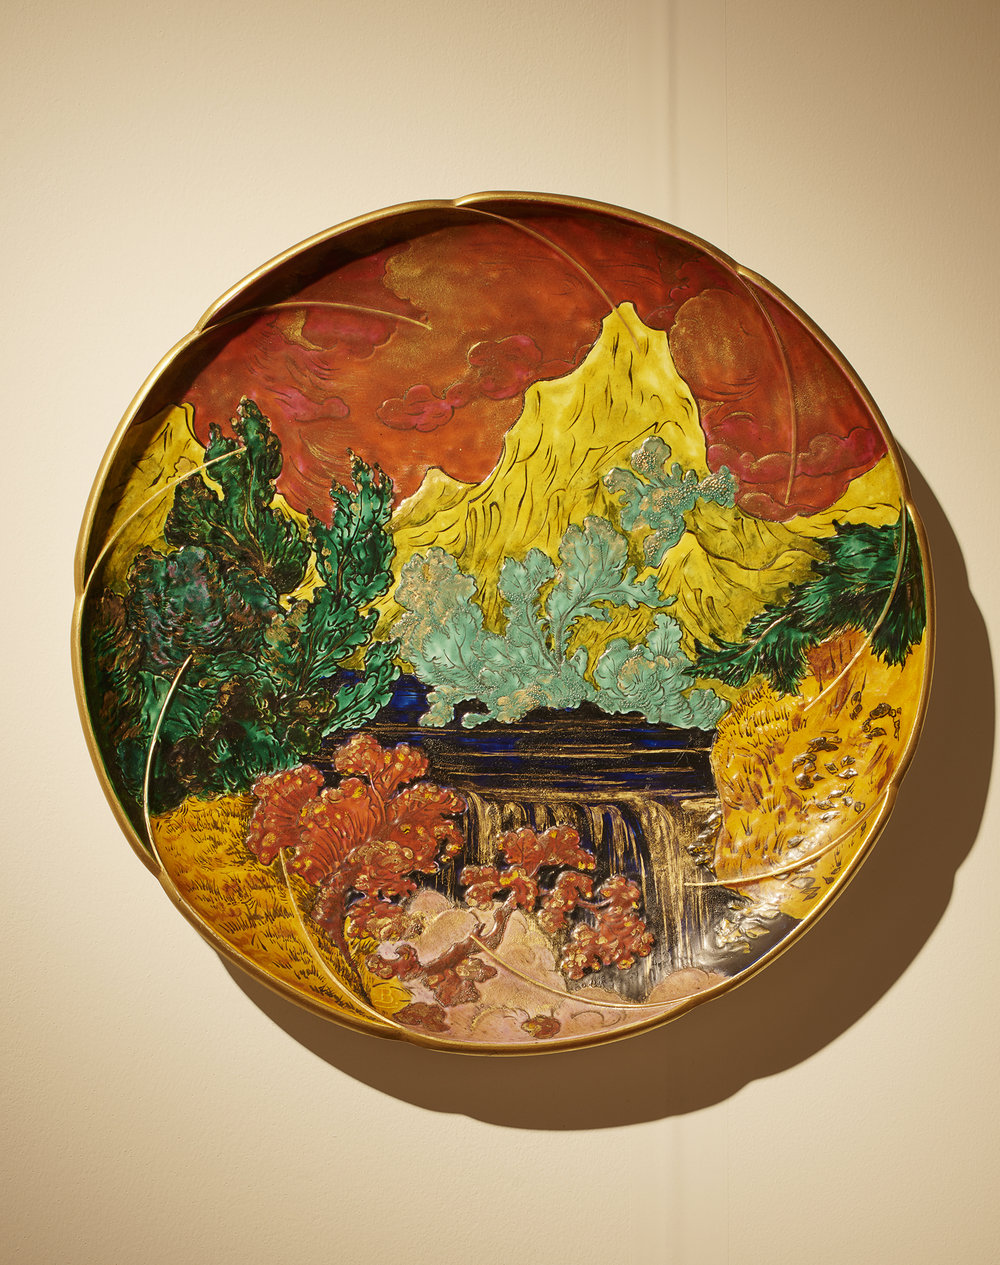 Robert Zehil Gallery - Design Miami/Basel 2018  Important plate 'Landscape', Felix Bracquemond, cca 1874 - 76 Hard paste porcelain, manufactured at Halivand & Cie in the Auteuil workshop 50 cm dimaeter; Monogrammed B ⓒ  James Harris